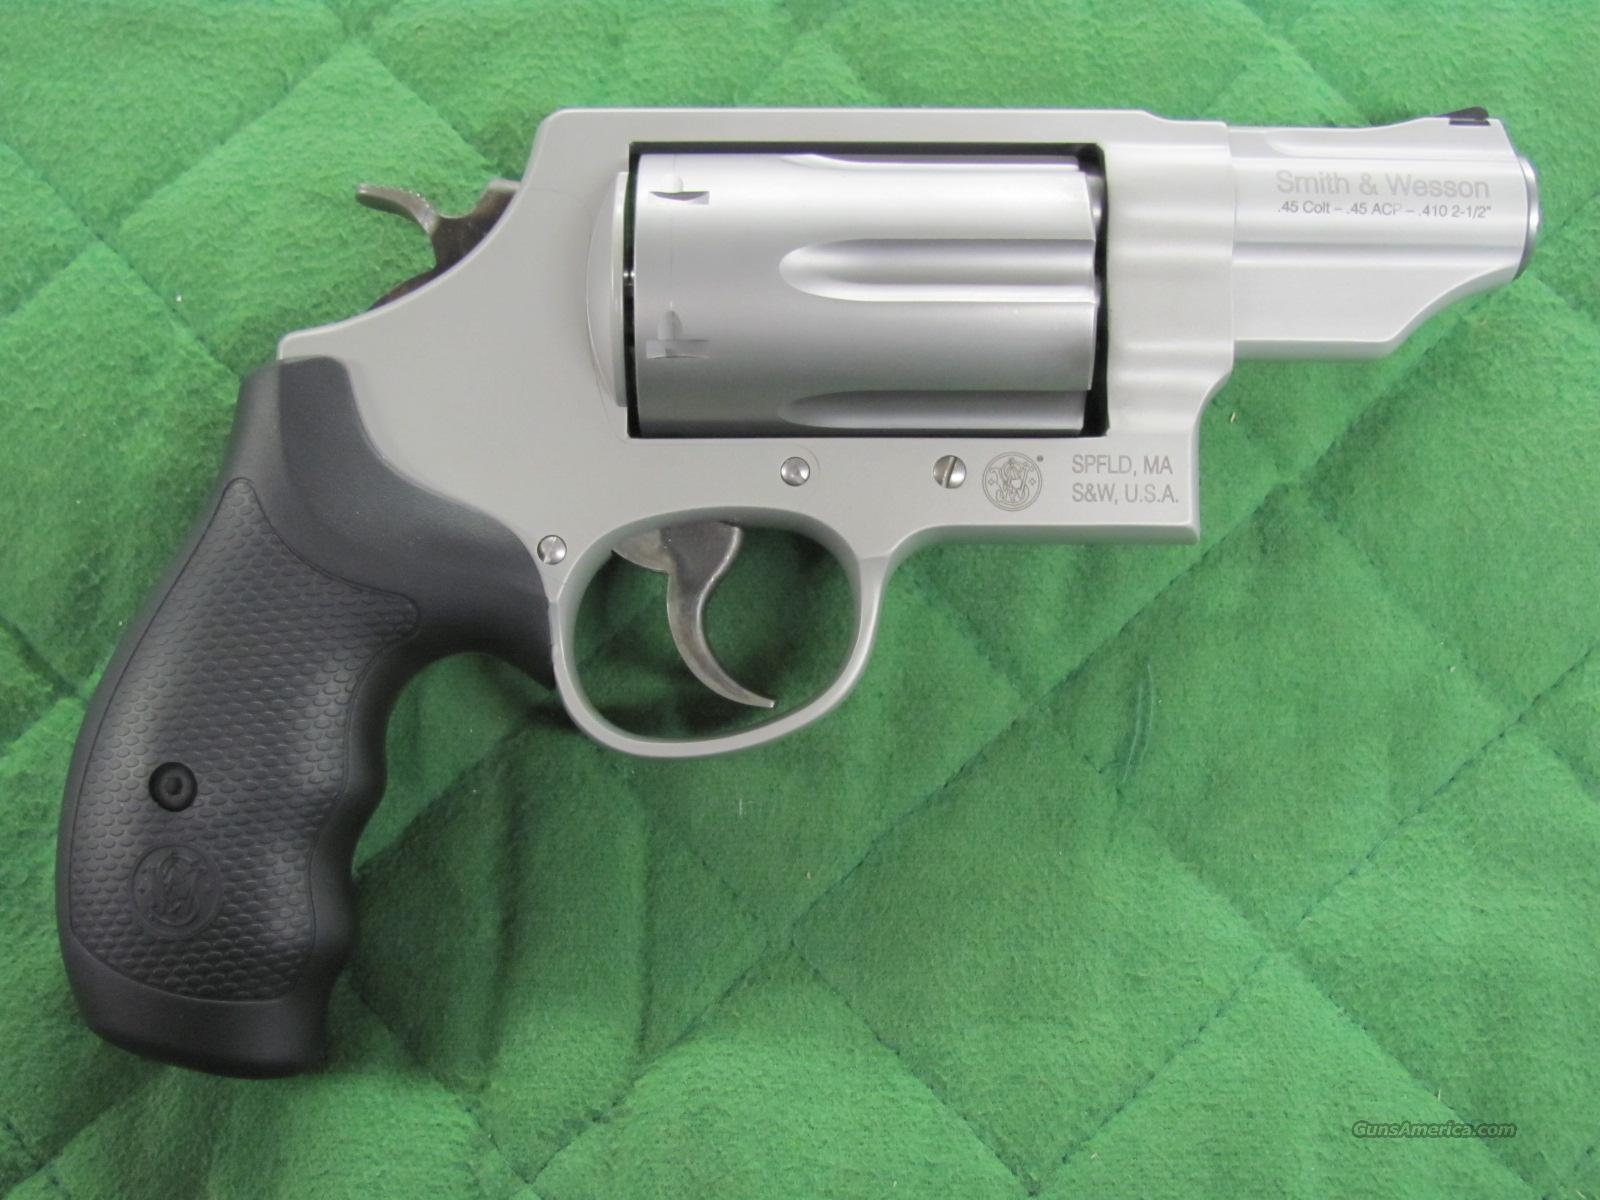 Smith & Wesson Governor Stainless 45 Colt / 45 ... for sale